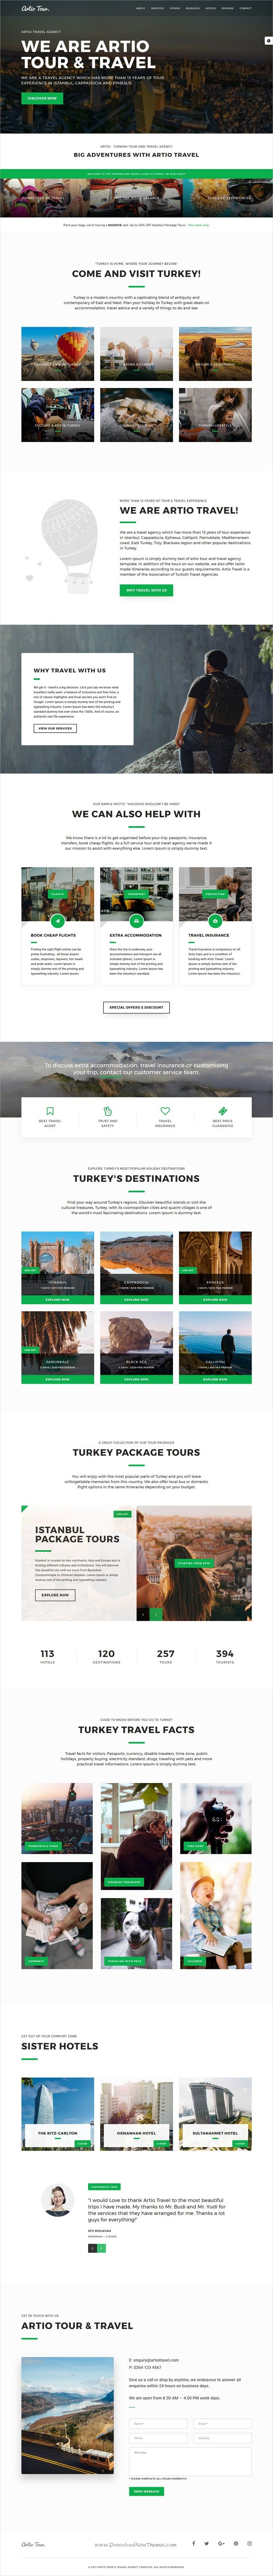 Best 25+ Travel and tours agency ideas on Pinterest